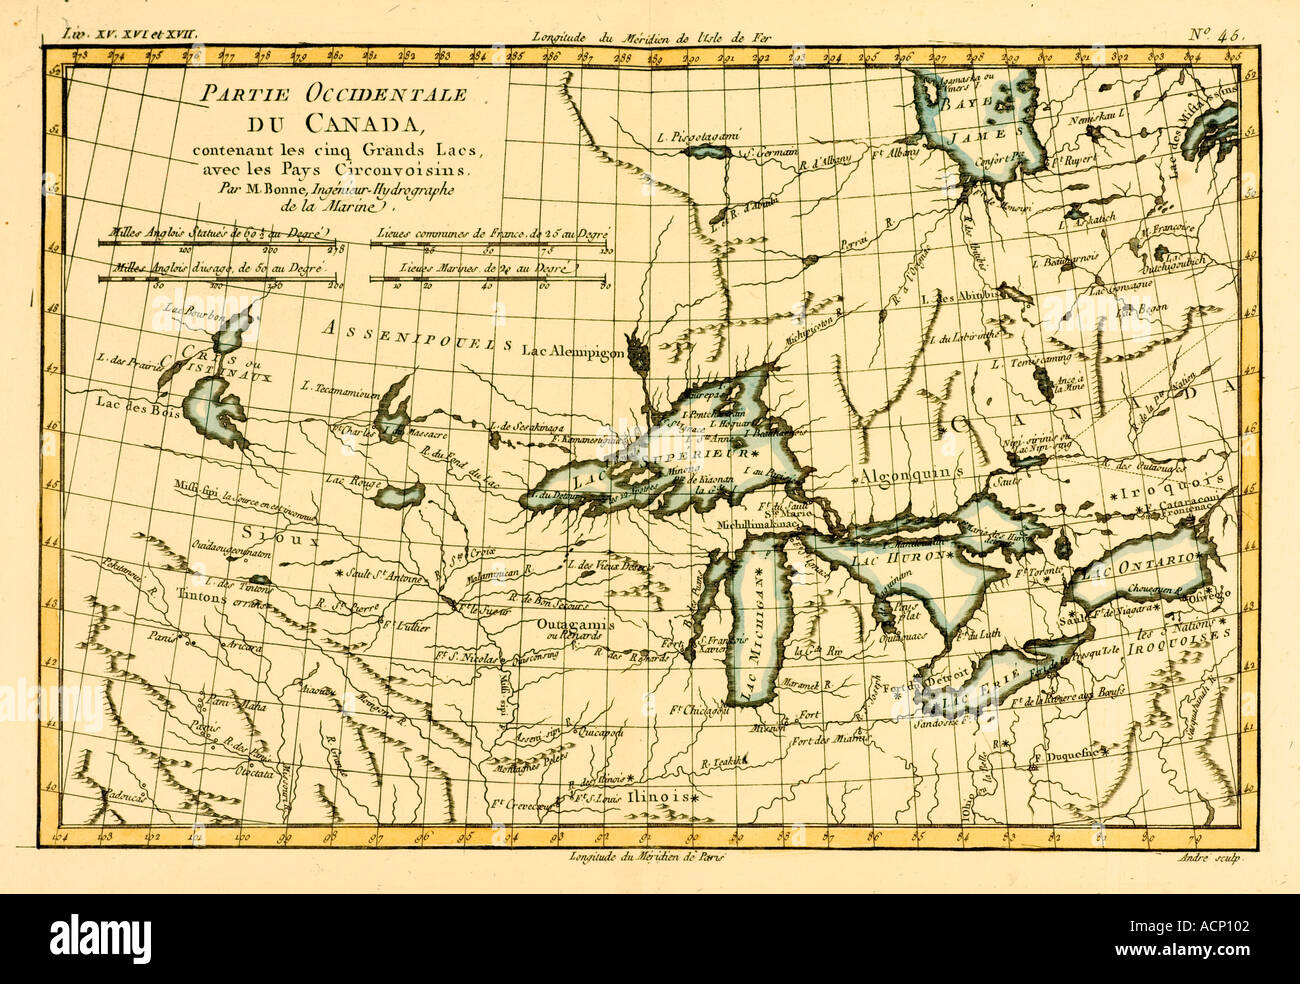 Map of western Canada including the five great lakes circa 1760 - Stock Image